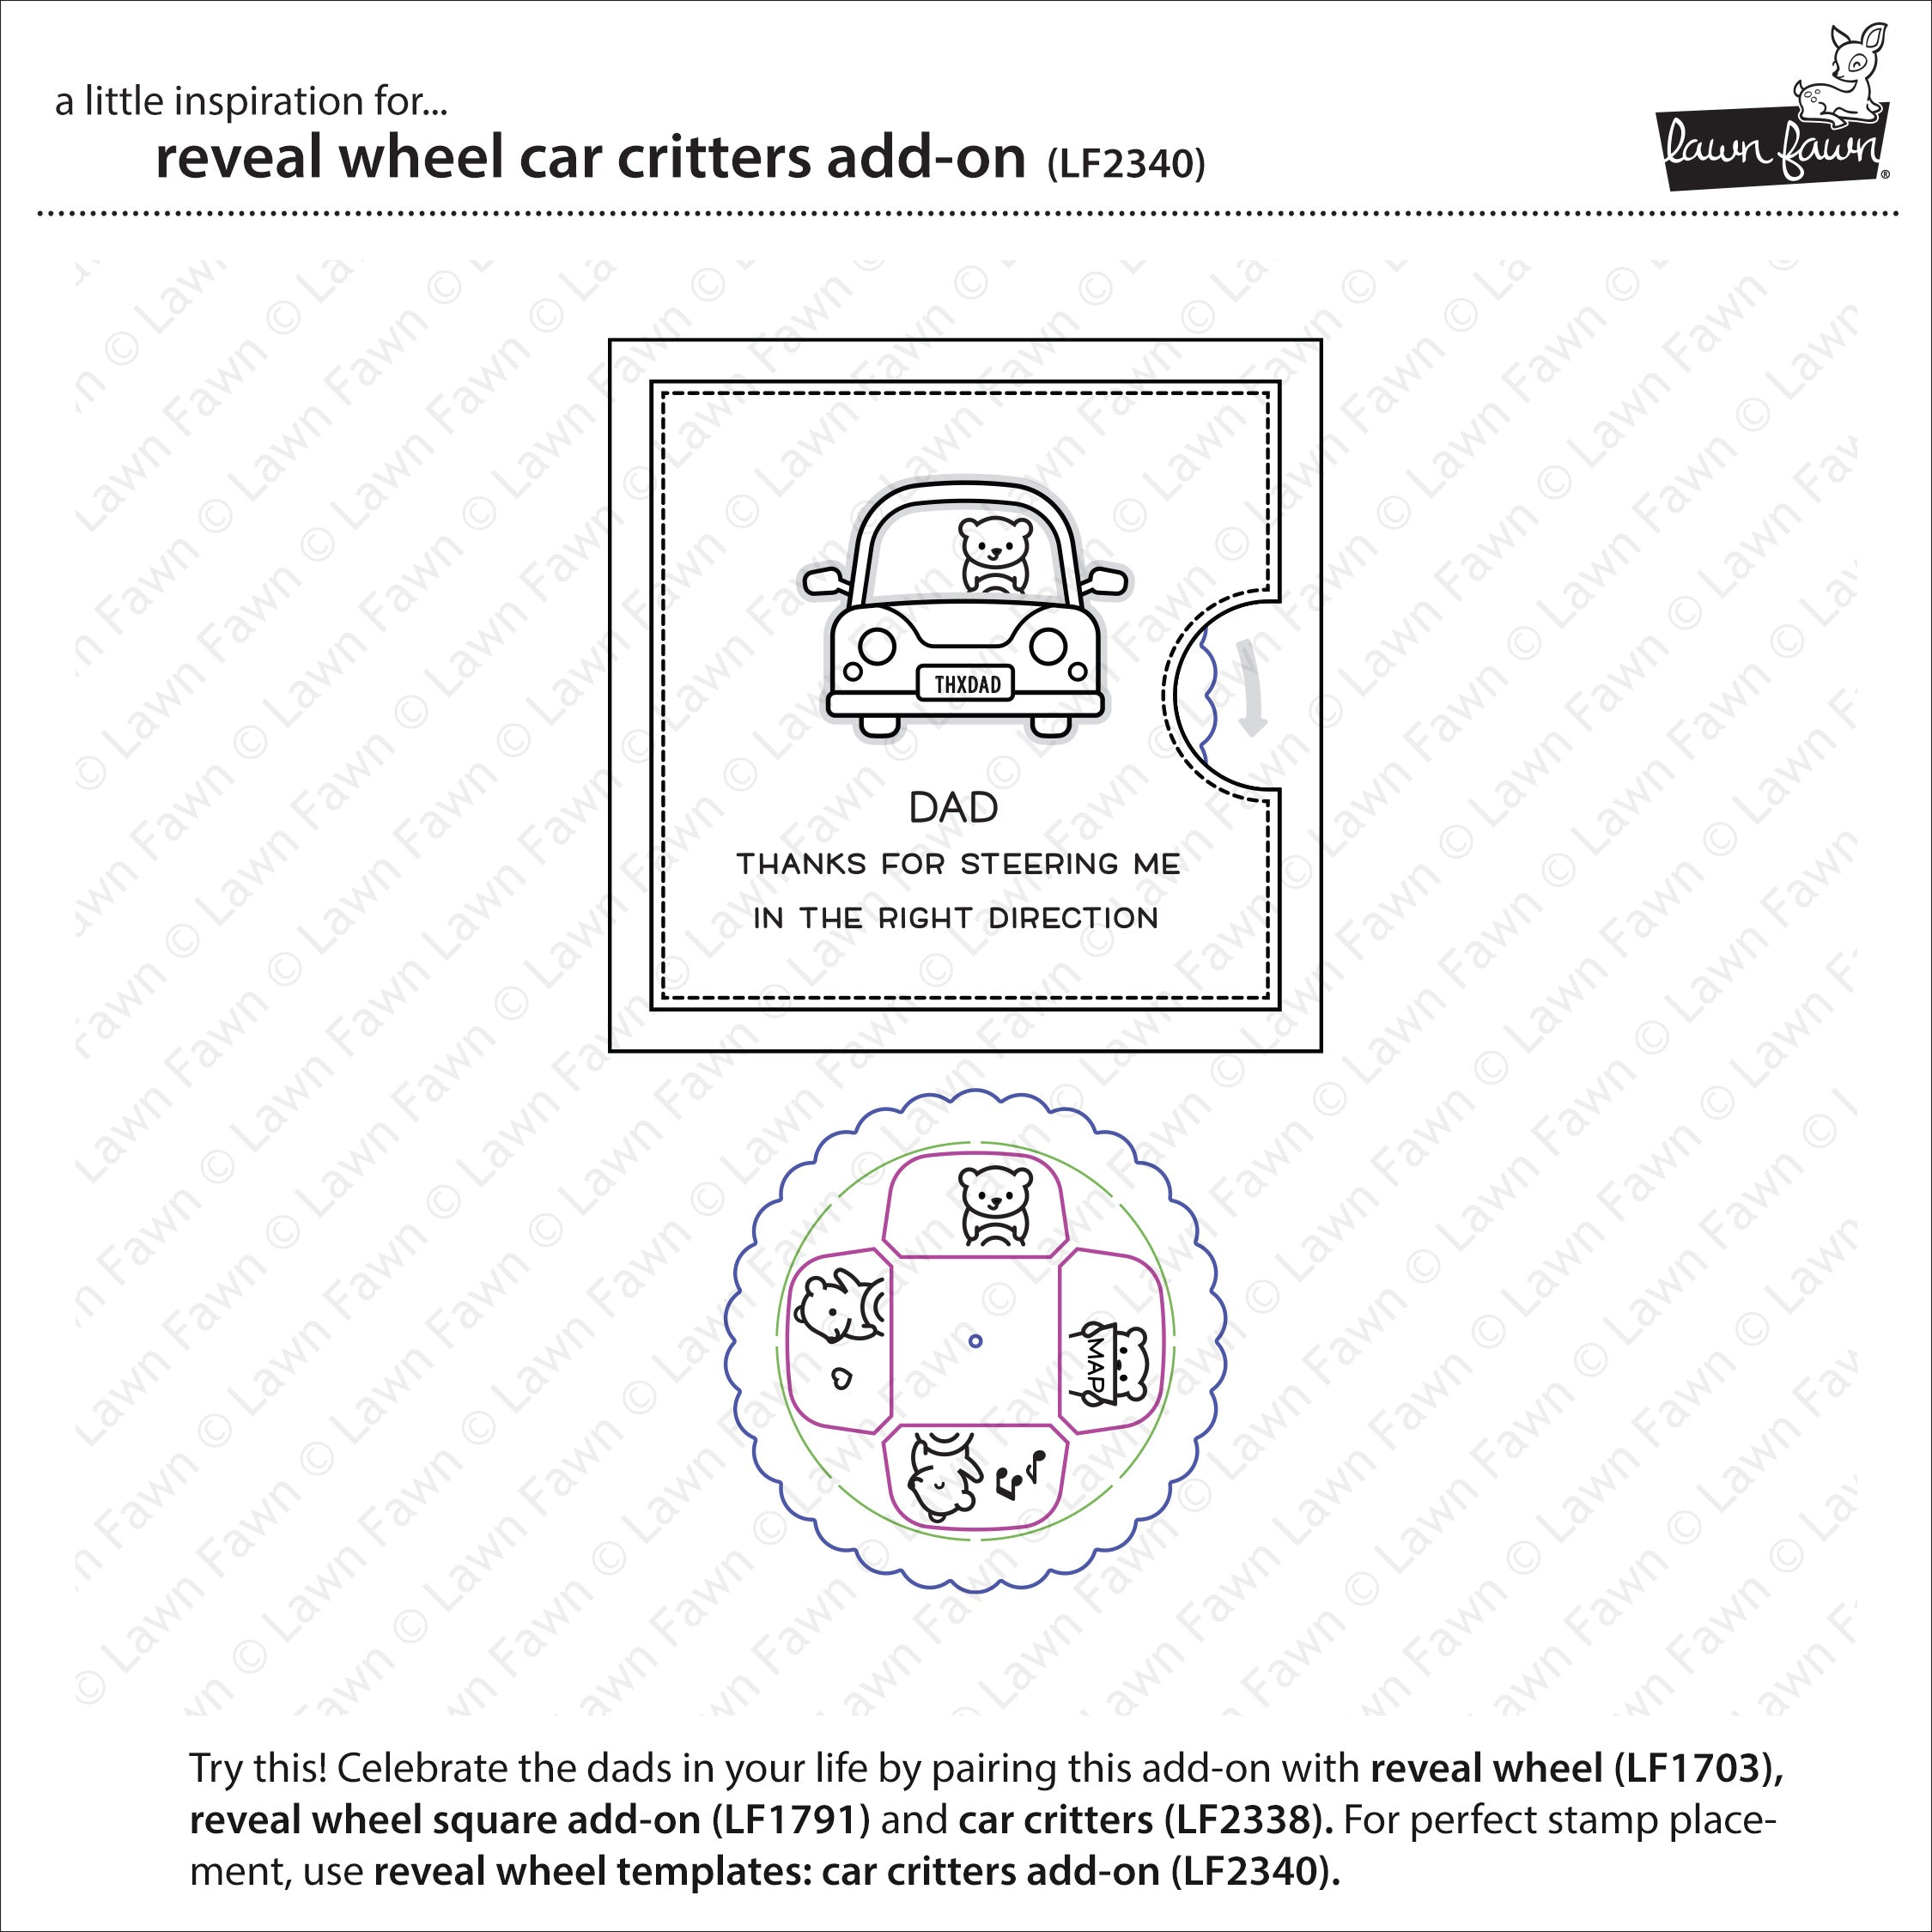 reveal wheel car critters add-on